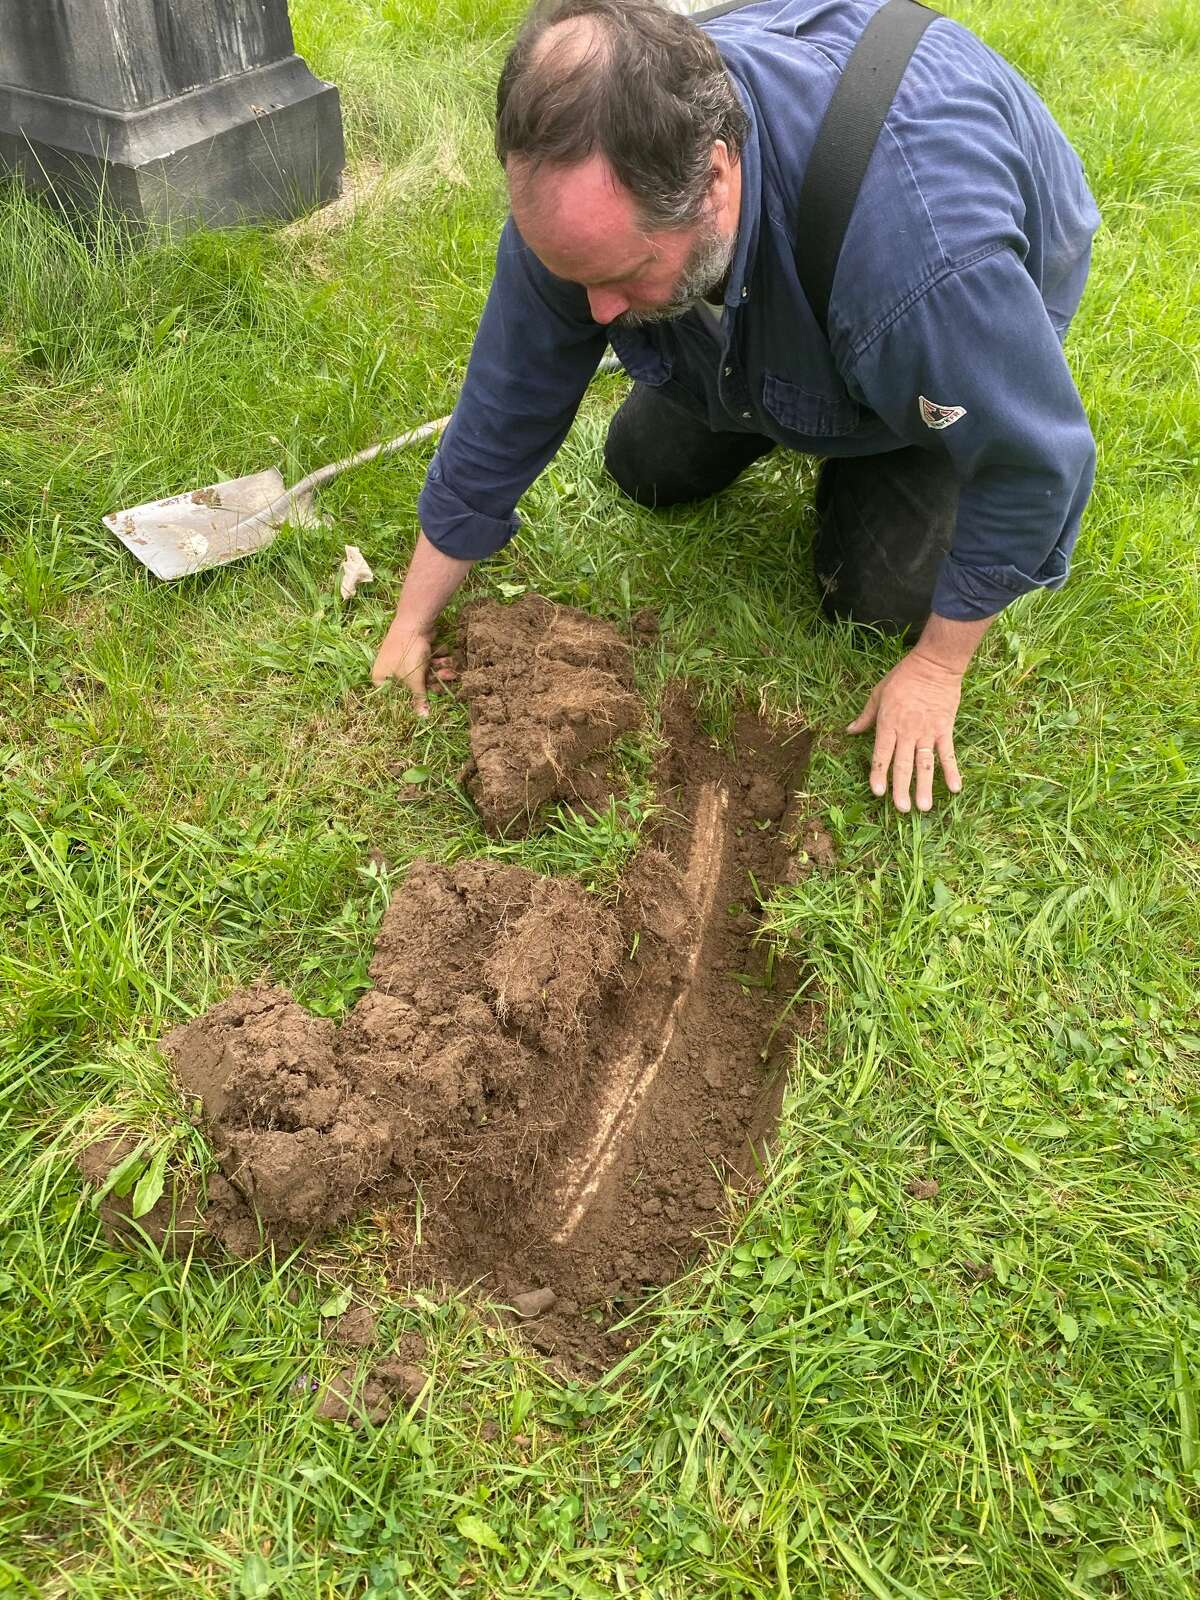 Chris White, owner of Albany Grave Digger, starts to uncover part of the gravestone for the Rev. Nathaniel Paul, who arrived in Albany in 1820 as the founding pastor of what would become First African Baptist Church. White and historian Paula Lemire unearthed the marker earlier this week in Albany Rural Cemetery in Menands. It is presumed to have been buried for a century or more after  being toppled or falling over. (Provided photo.)